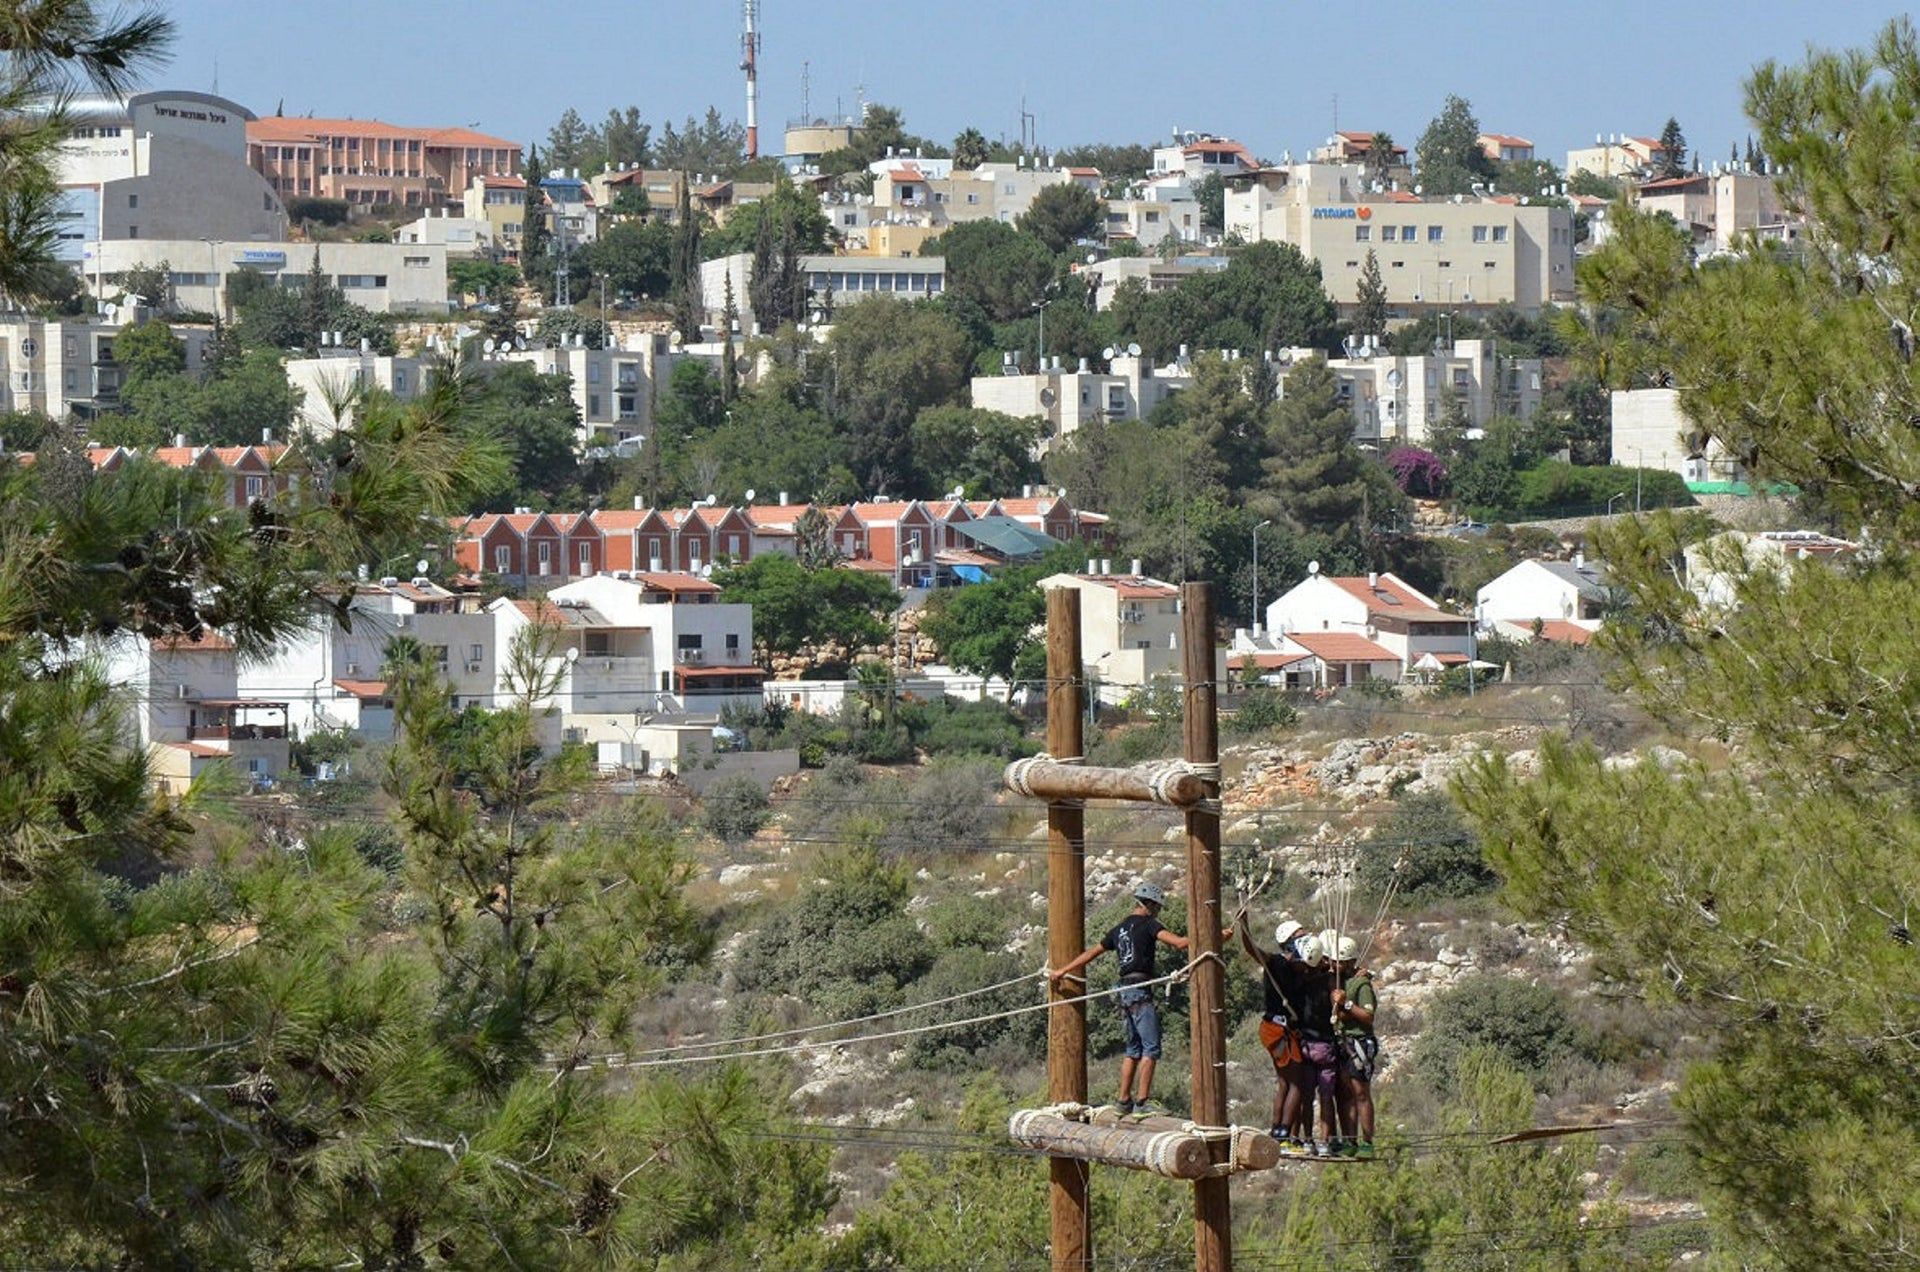 An activity at the National Leadership Center with the settlement of Ariel in the background, August, 2015.